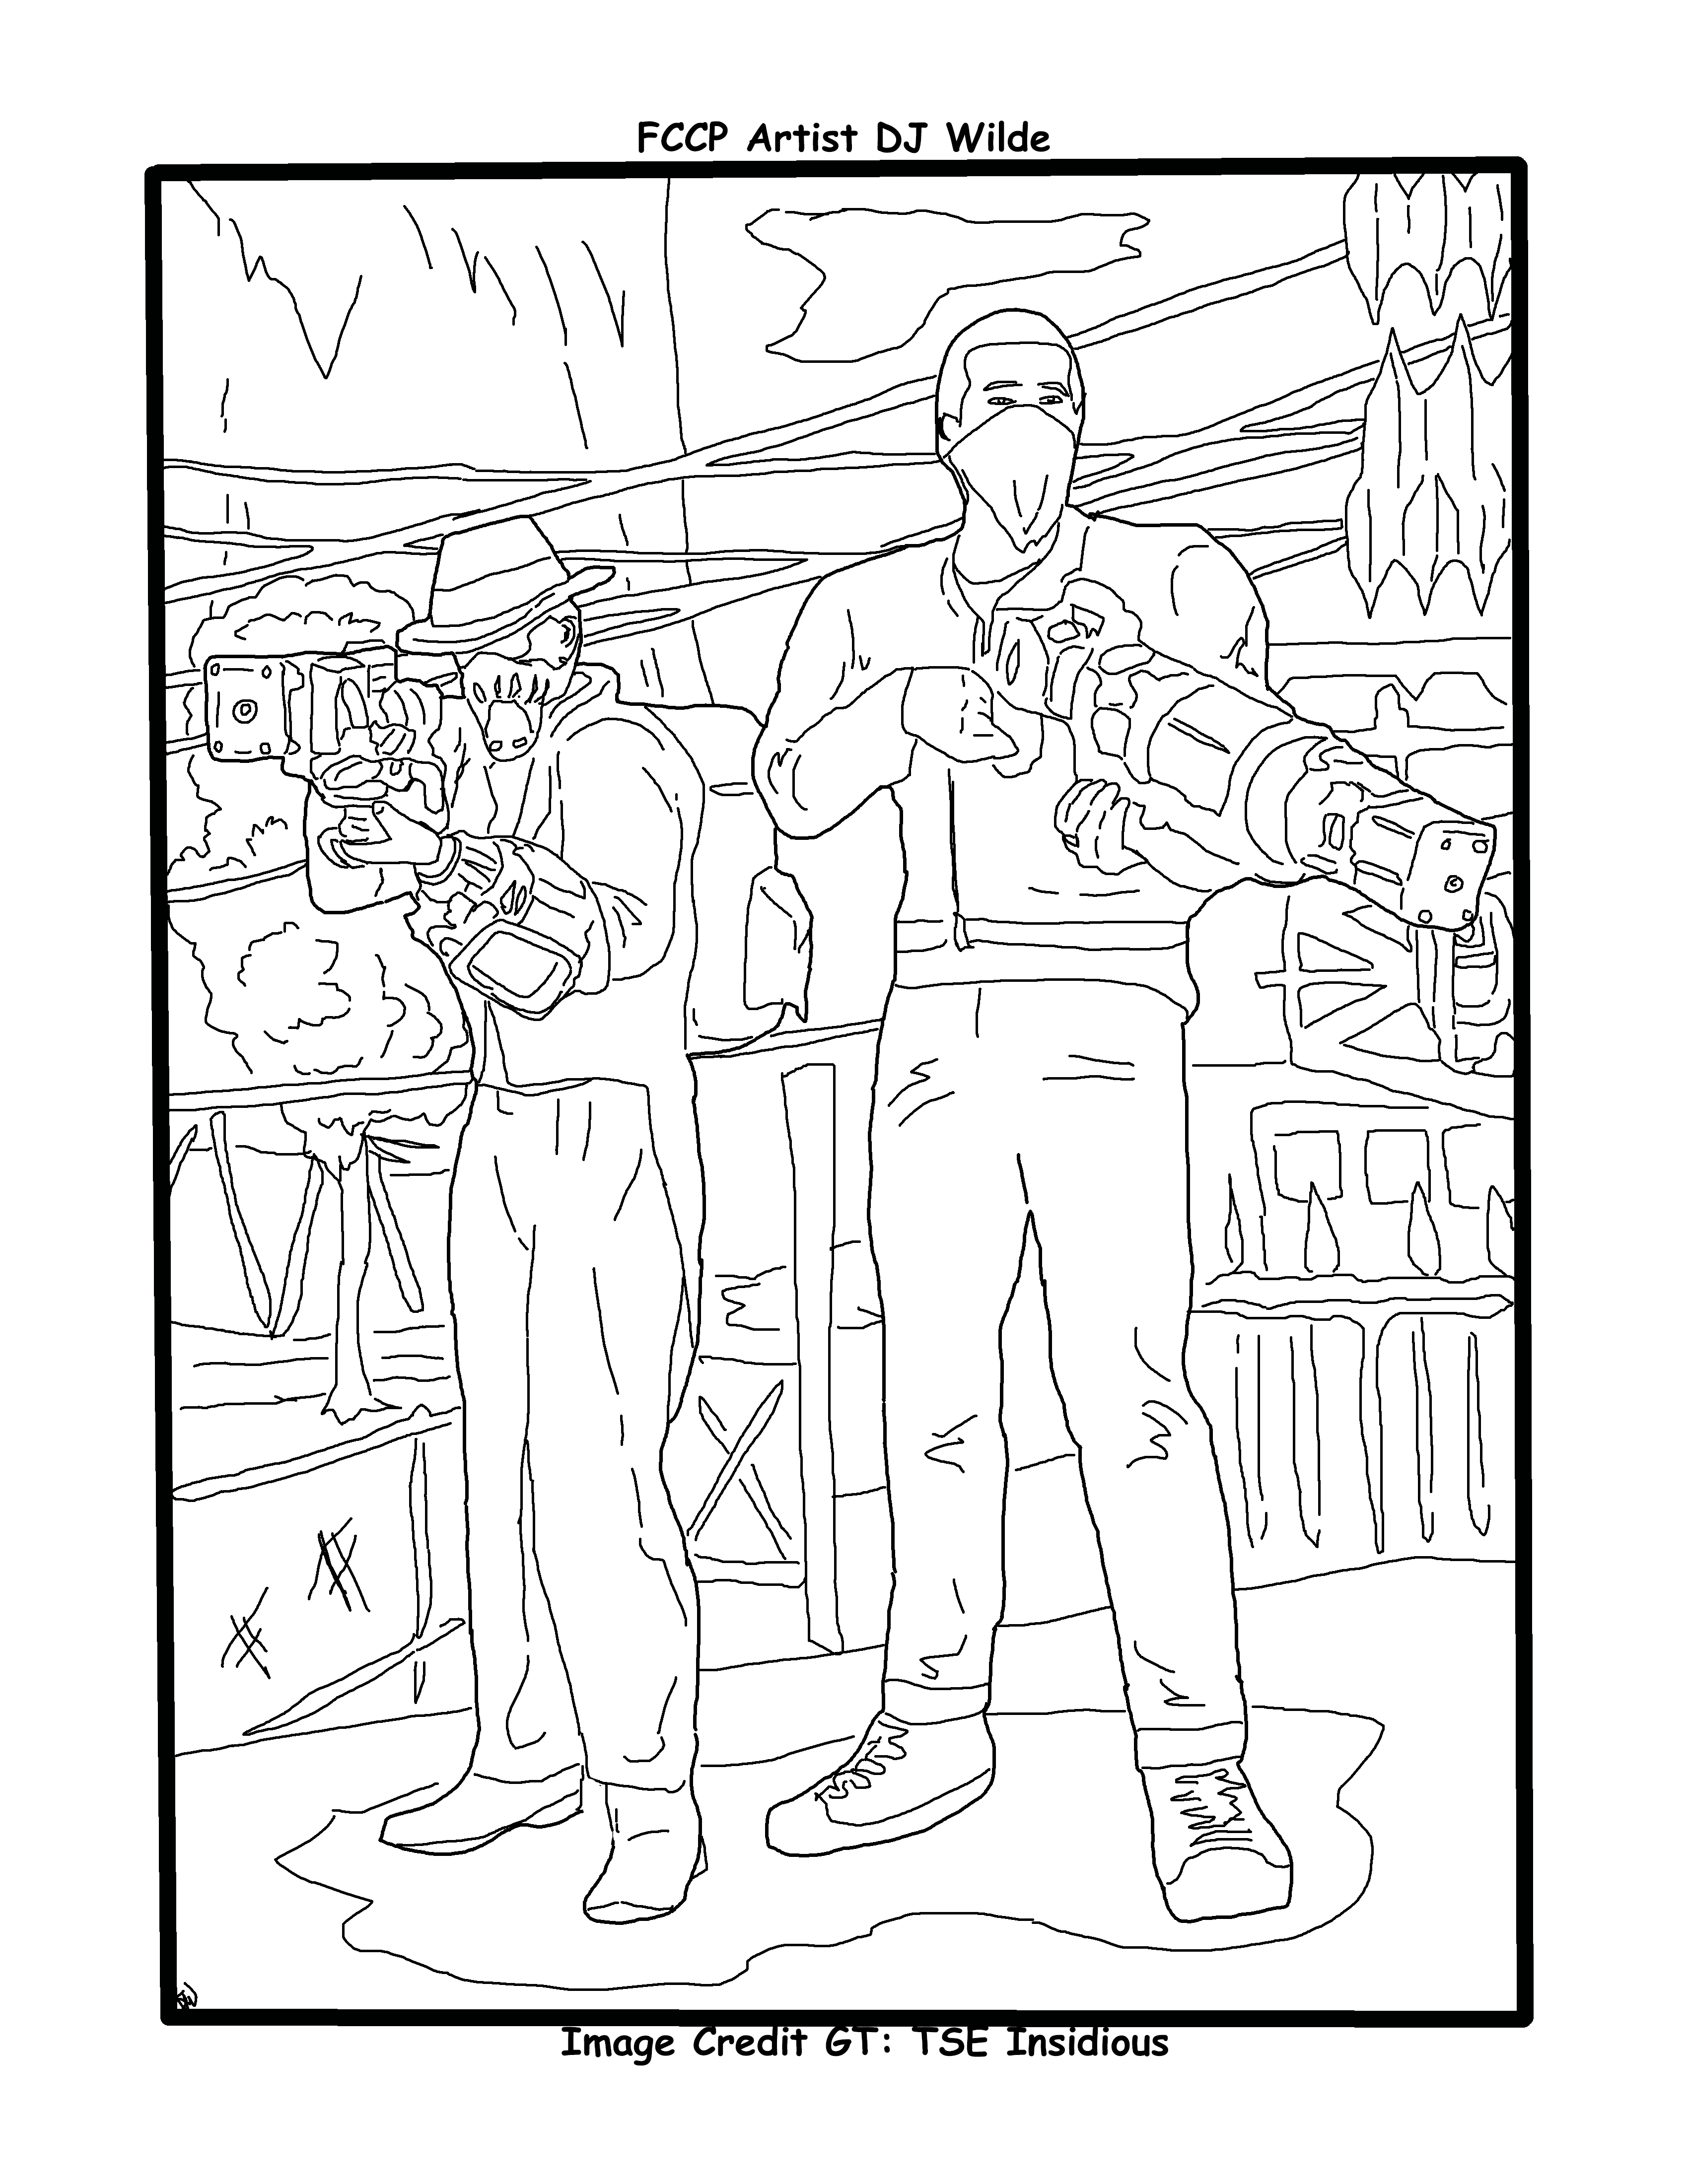 Fallout 76 Laser Guys Coloring Page Coloring Pages Color Diagram [ 4400 x 3400 Pixel ]